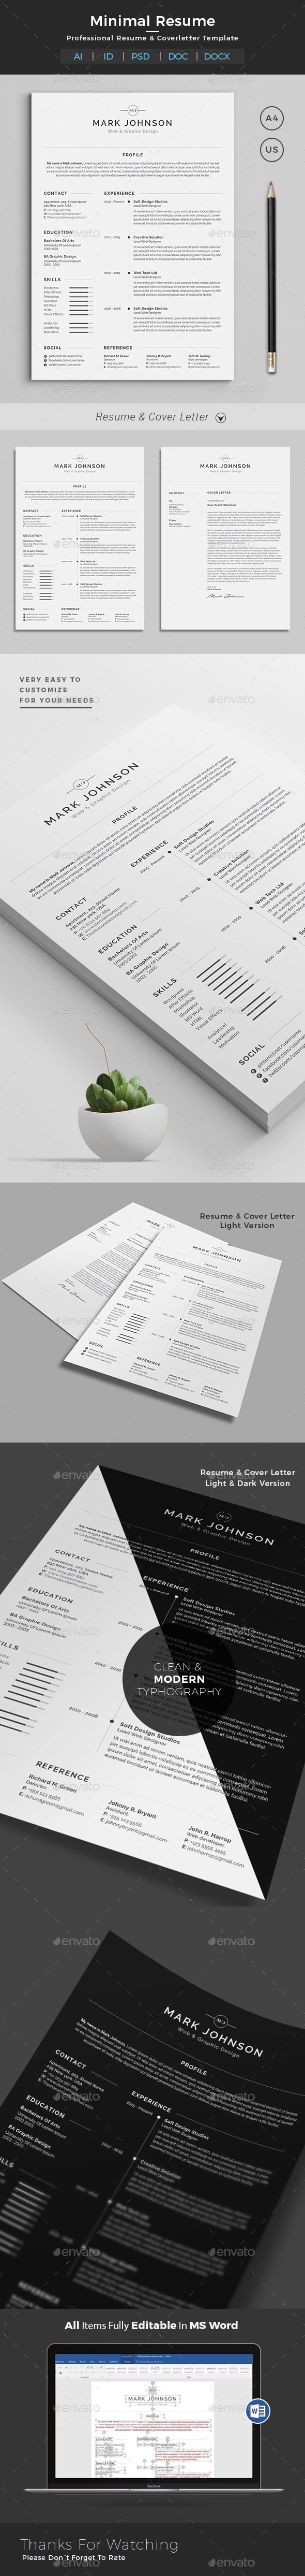 Resume Paper Size Canada